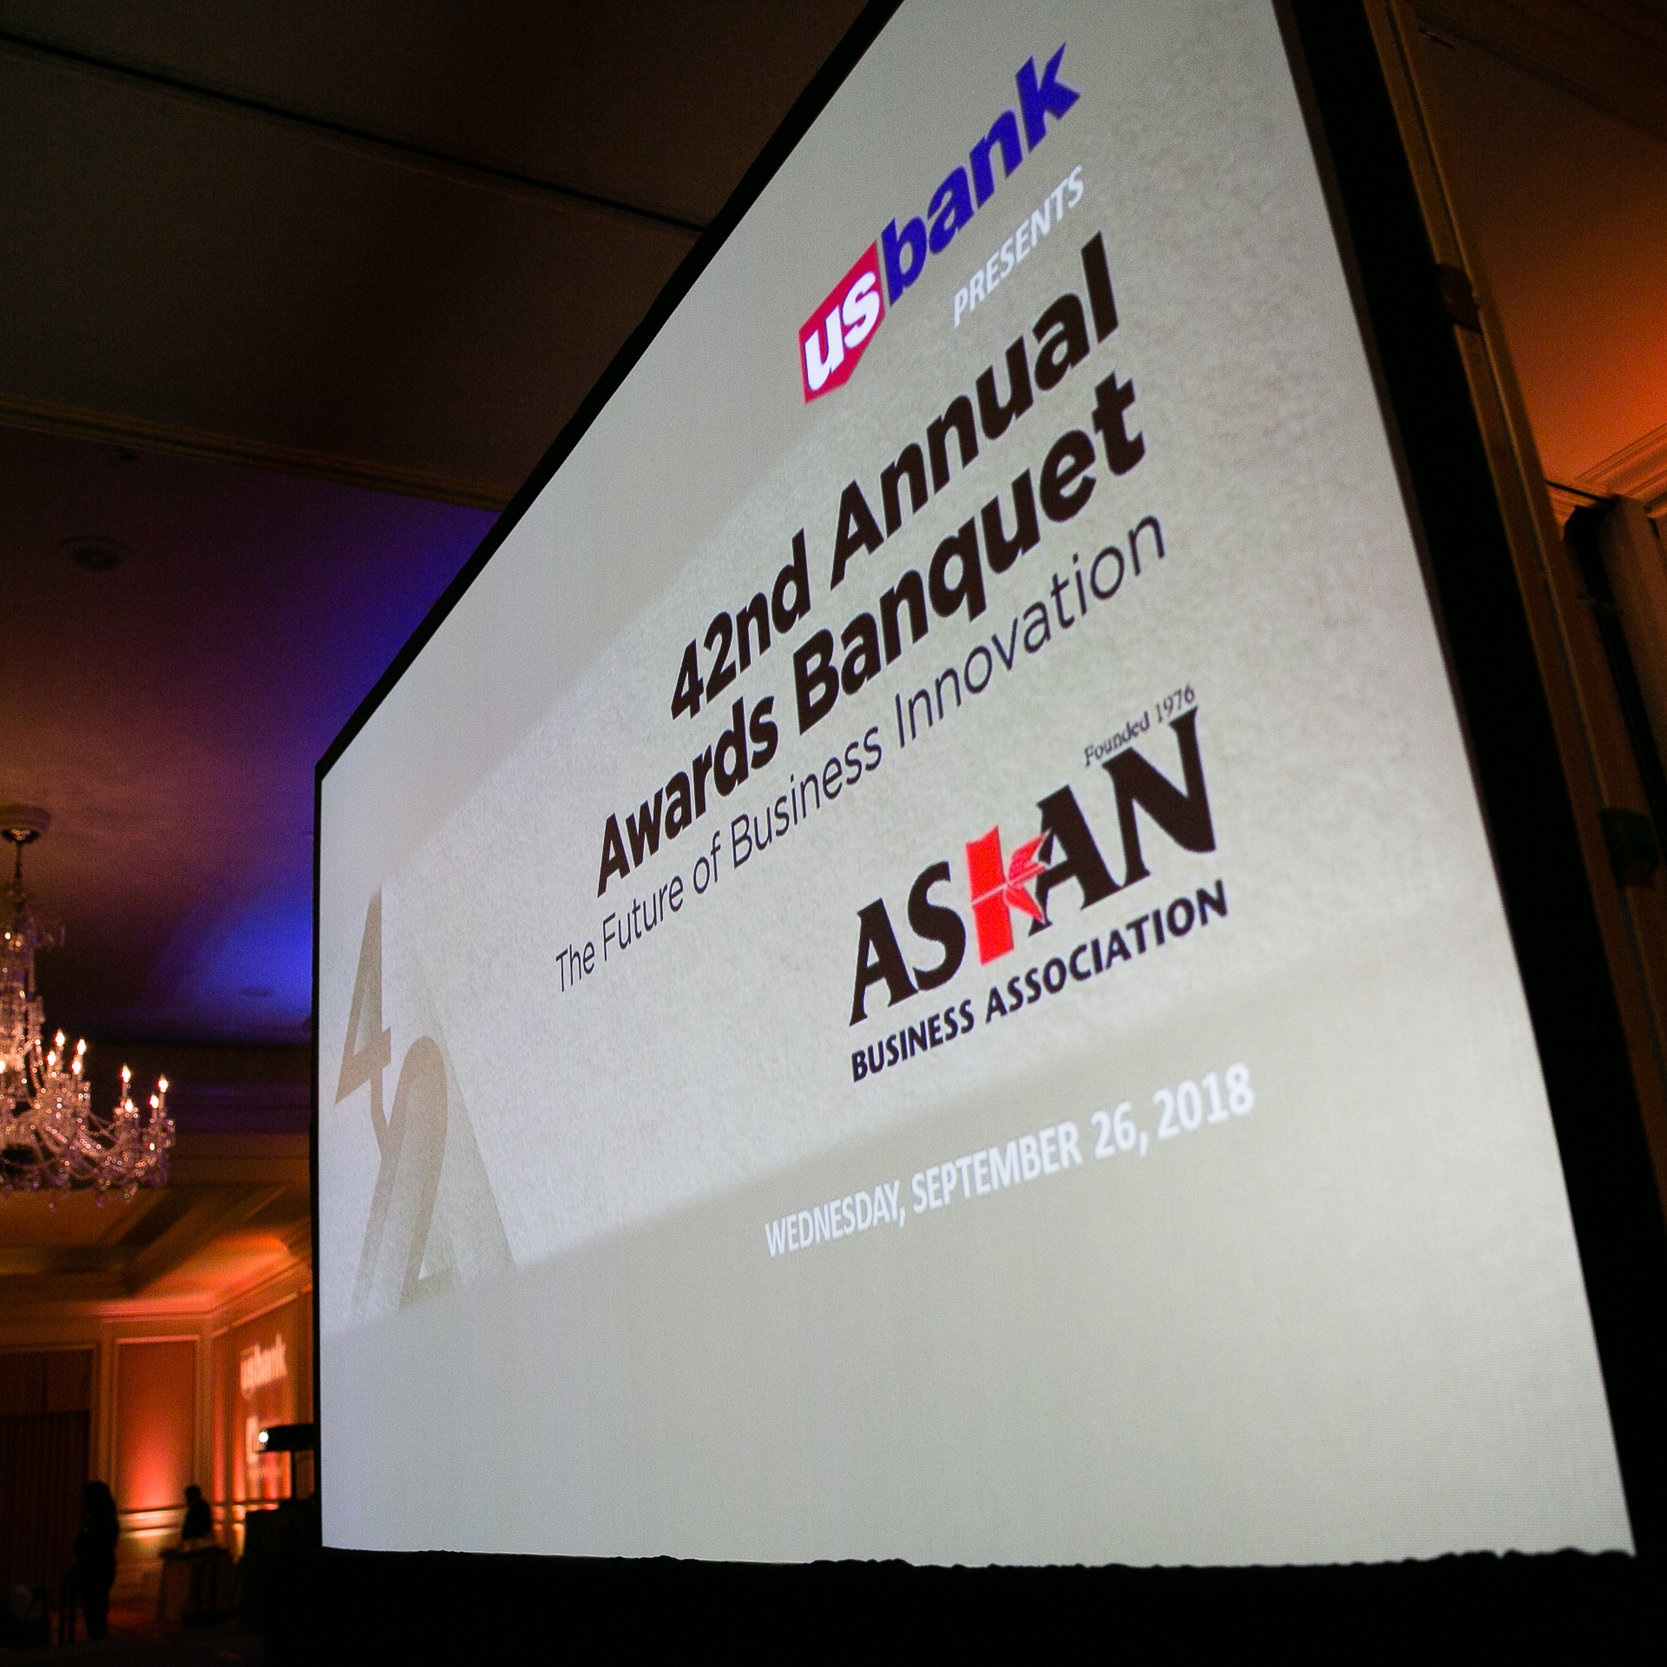 42nd Annual Awards Banquet*, Asian Business Association (ABA) - Huntington Langham Pasadena | Pasadena, CASeptember 26, 2018